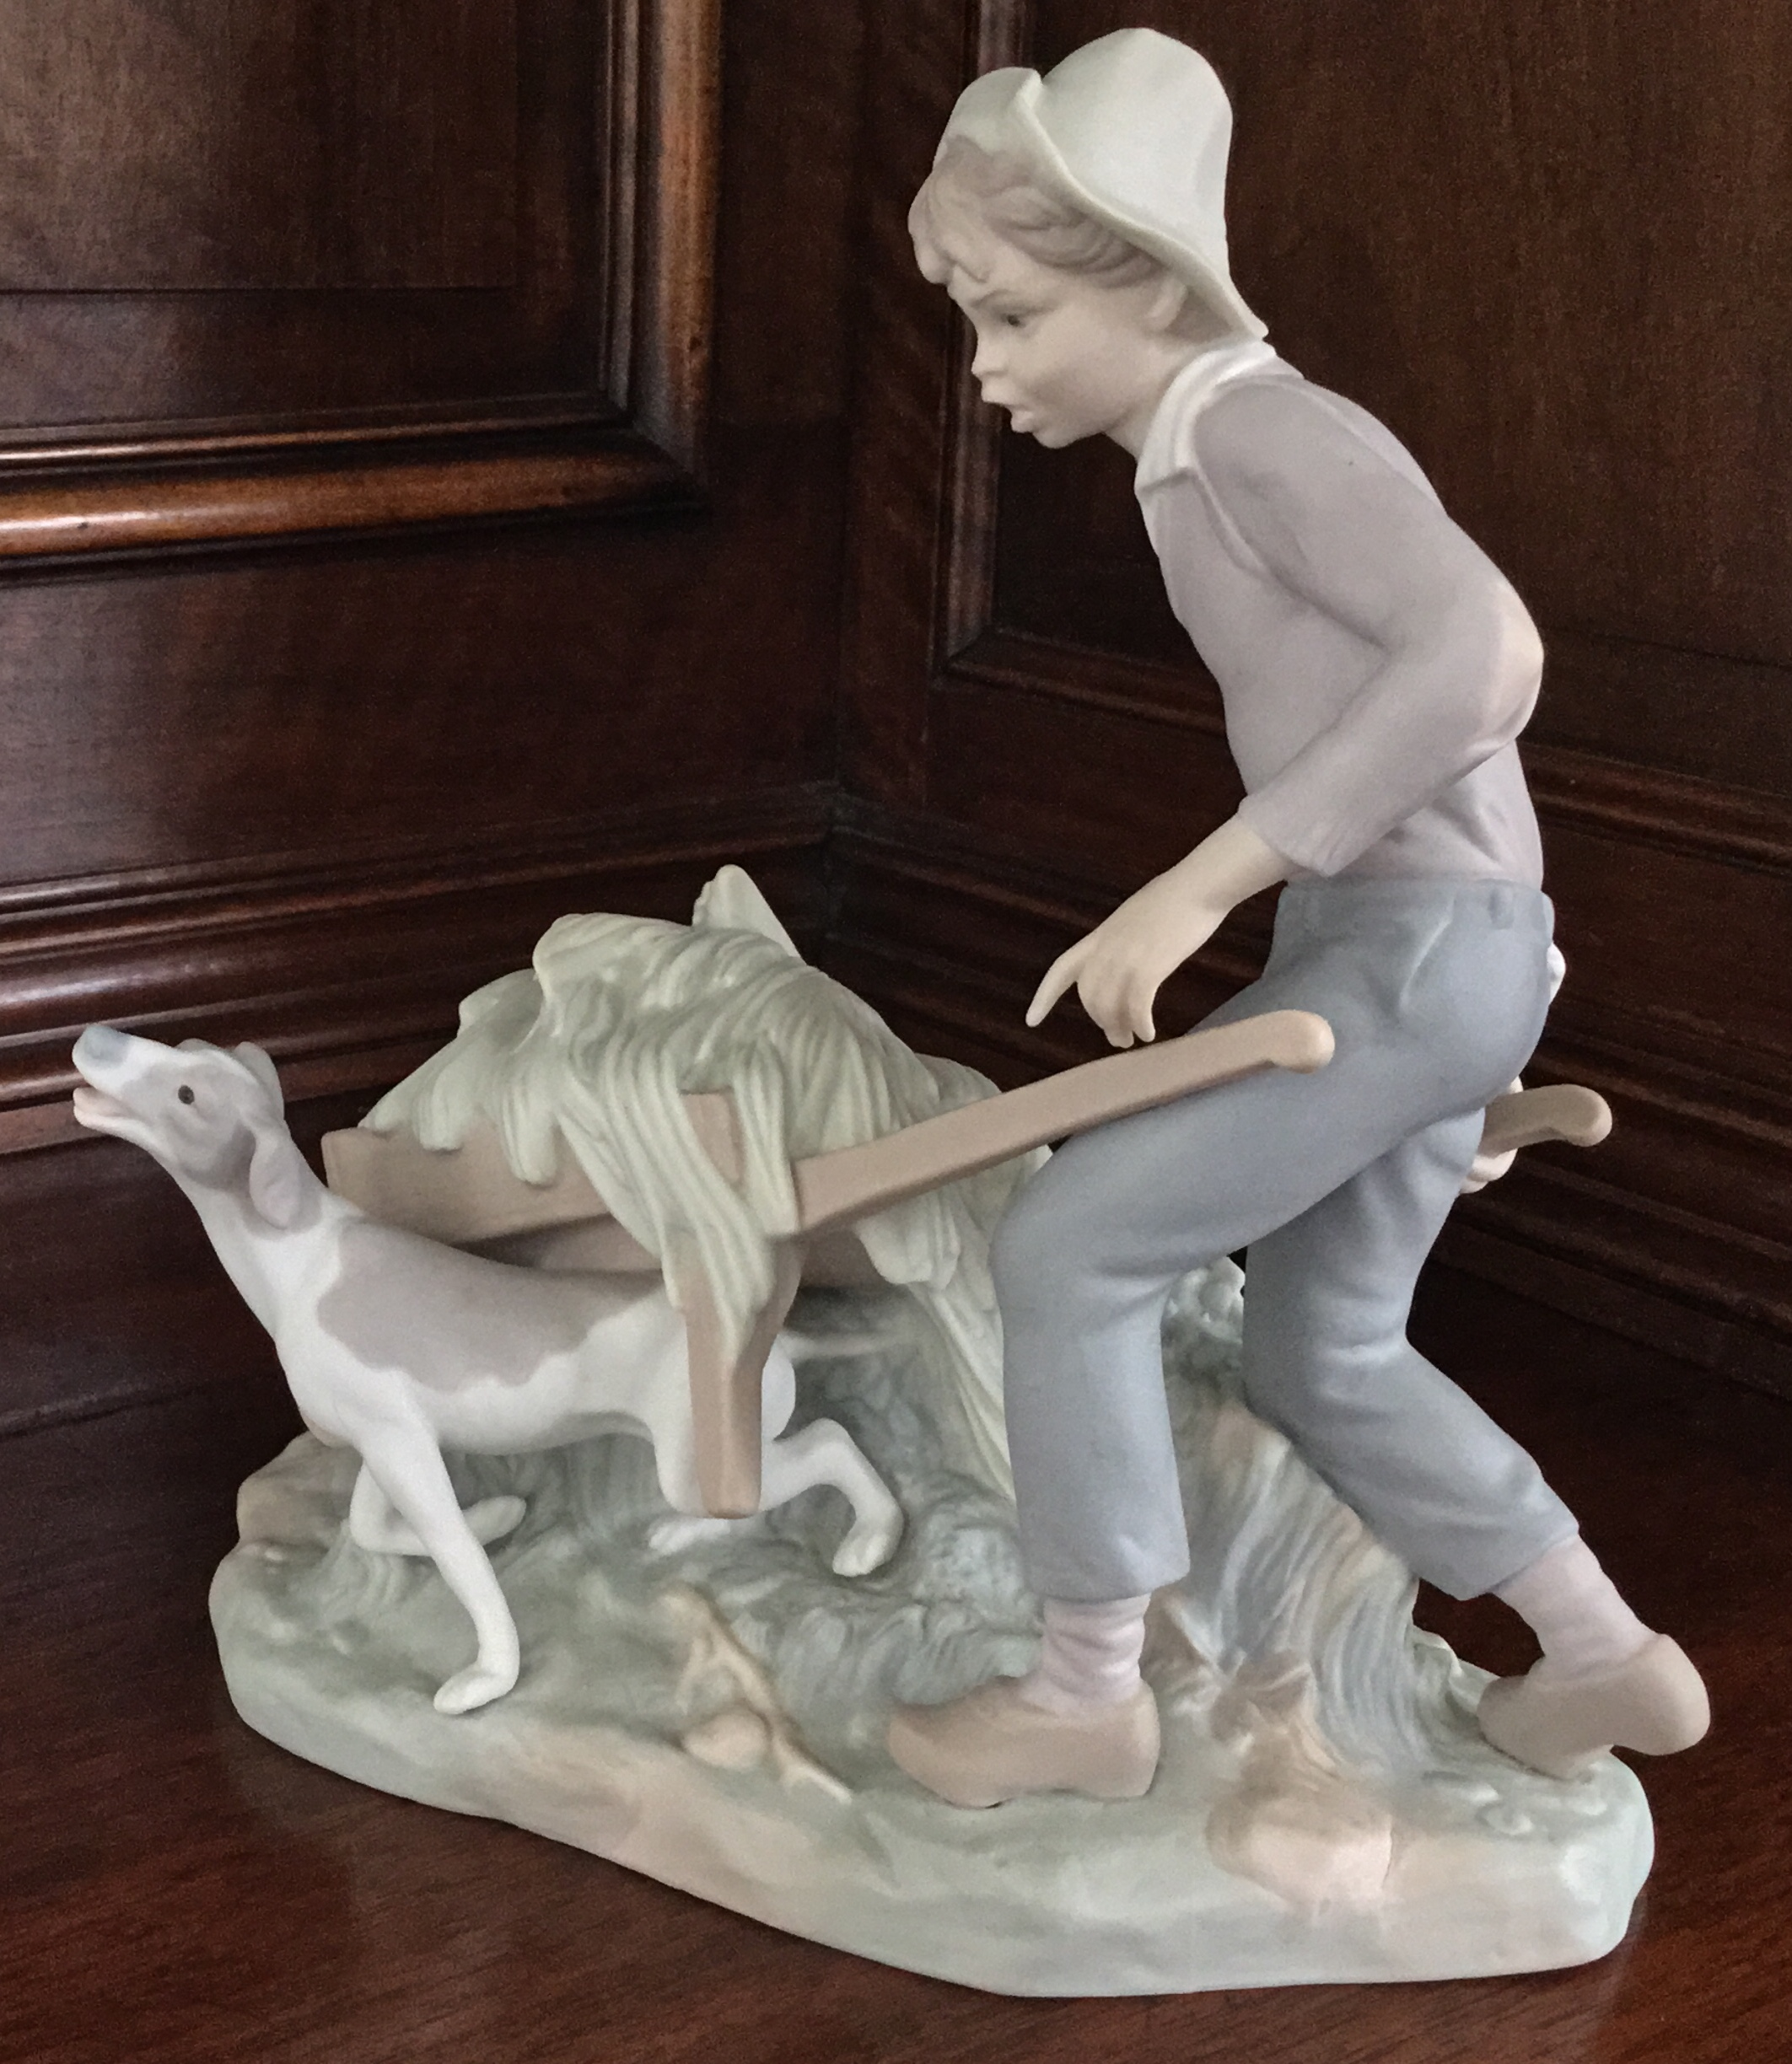 Lladro, Gardner in Trouble